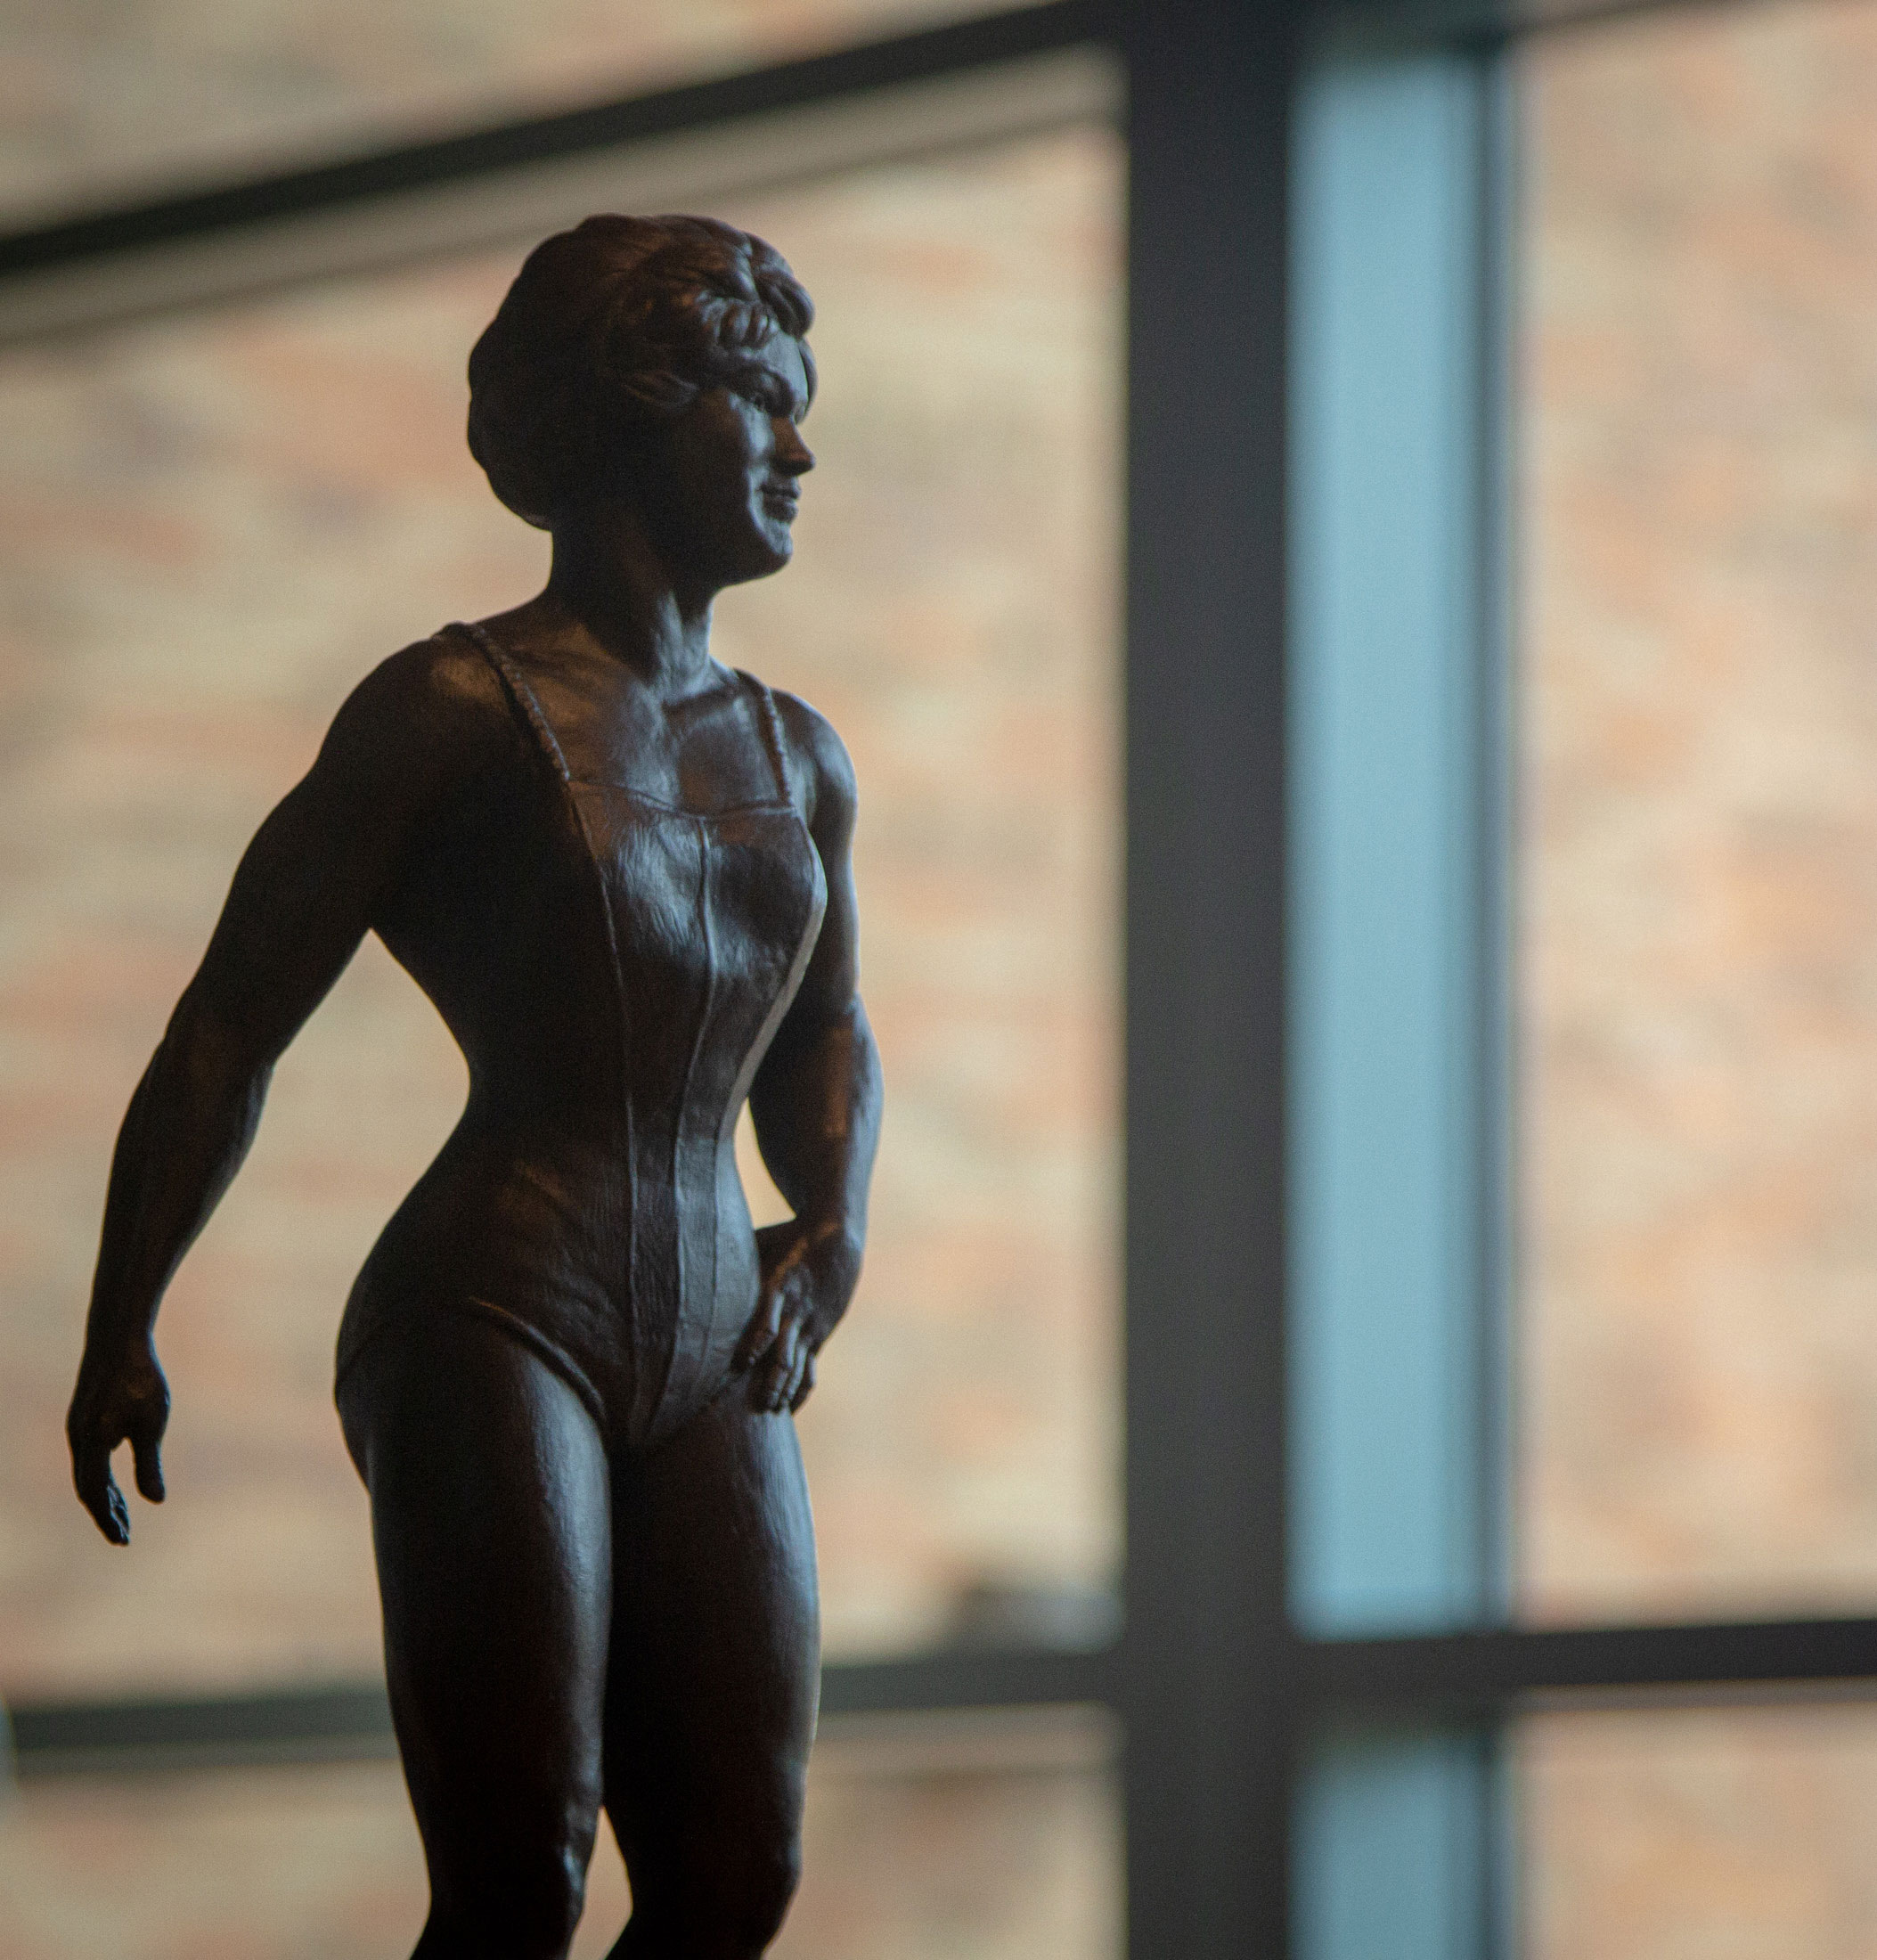 Bronze sculpture of strongwoman Katie Sandwina, by David Deming, from the David Deming Sculpture Collection, in the Reading Room.